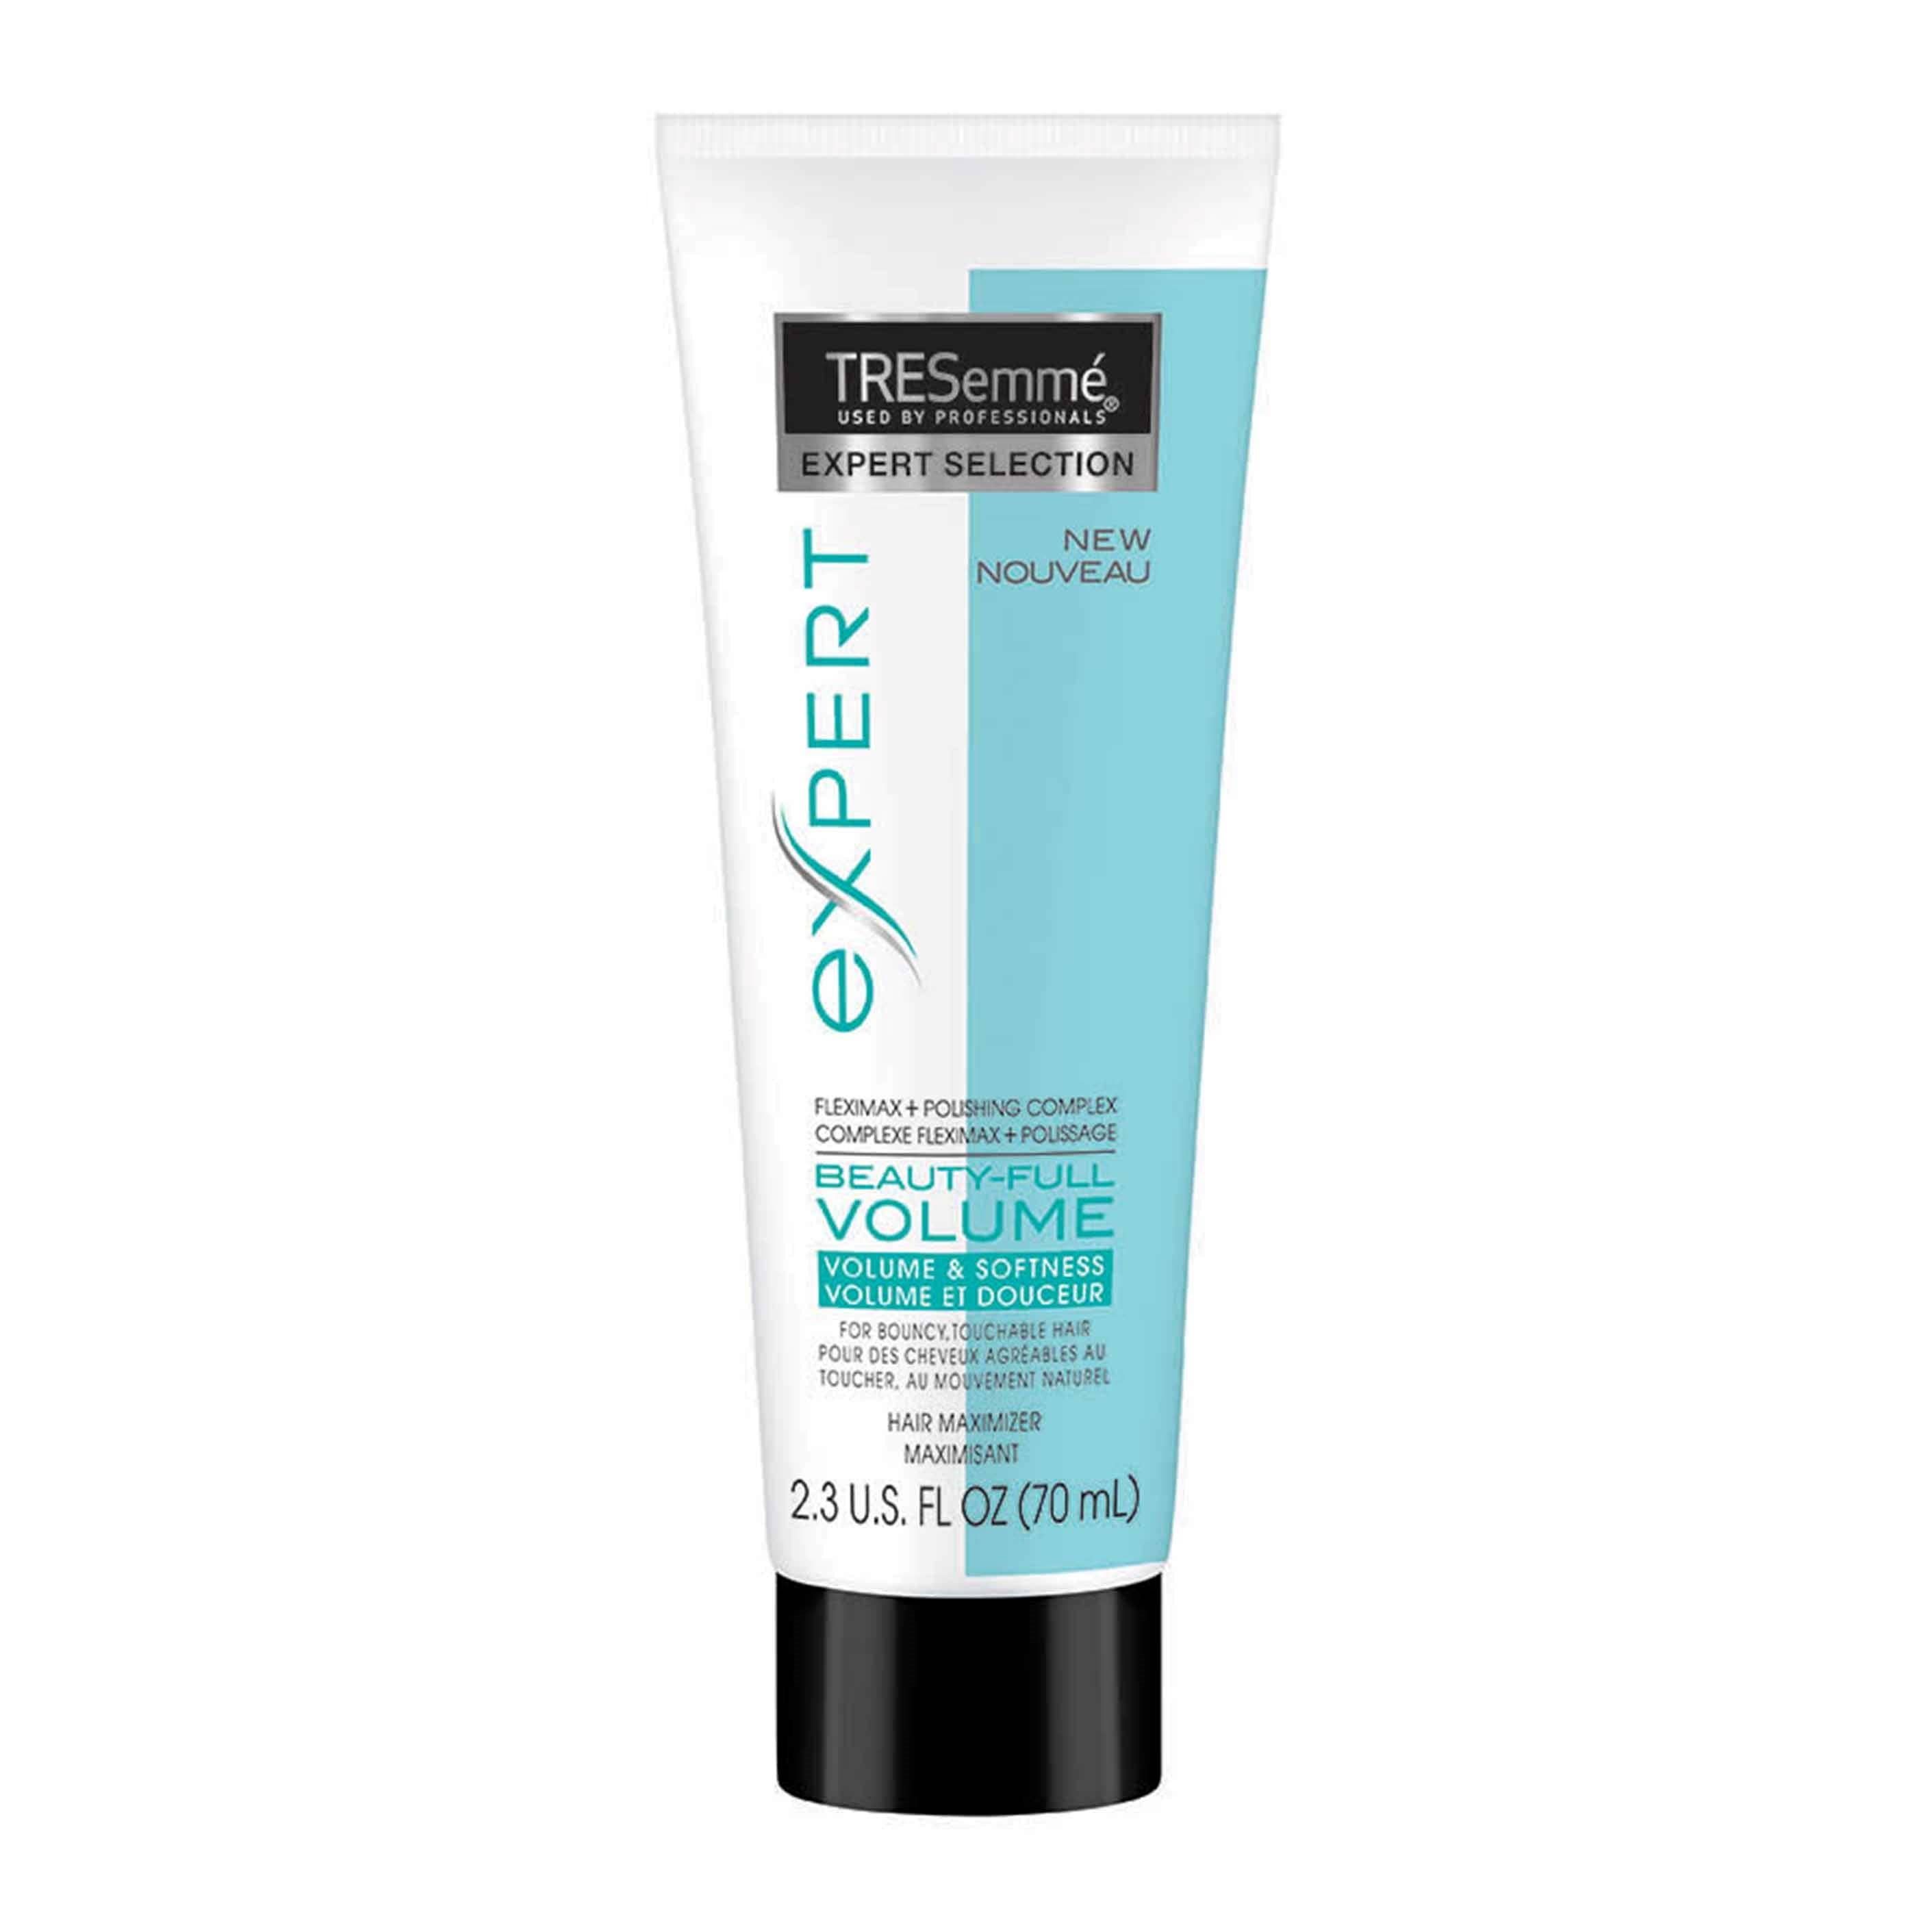 TRESemmé BEAUTY-FULL VOLUME HAIR MAXIMIZER